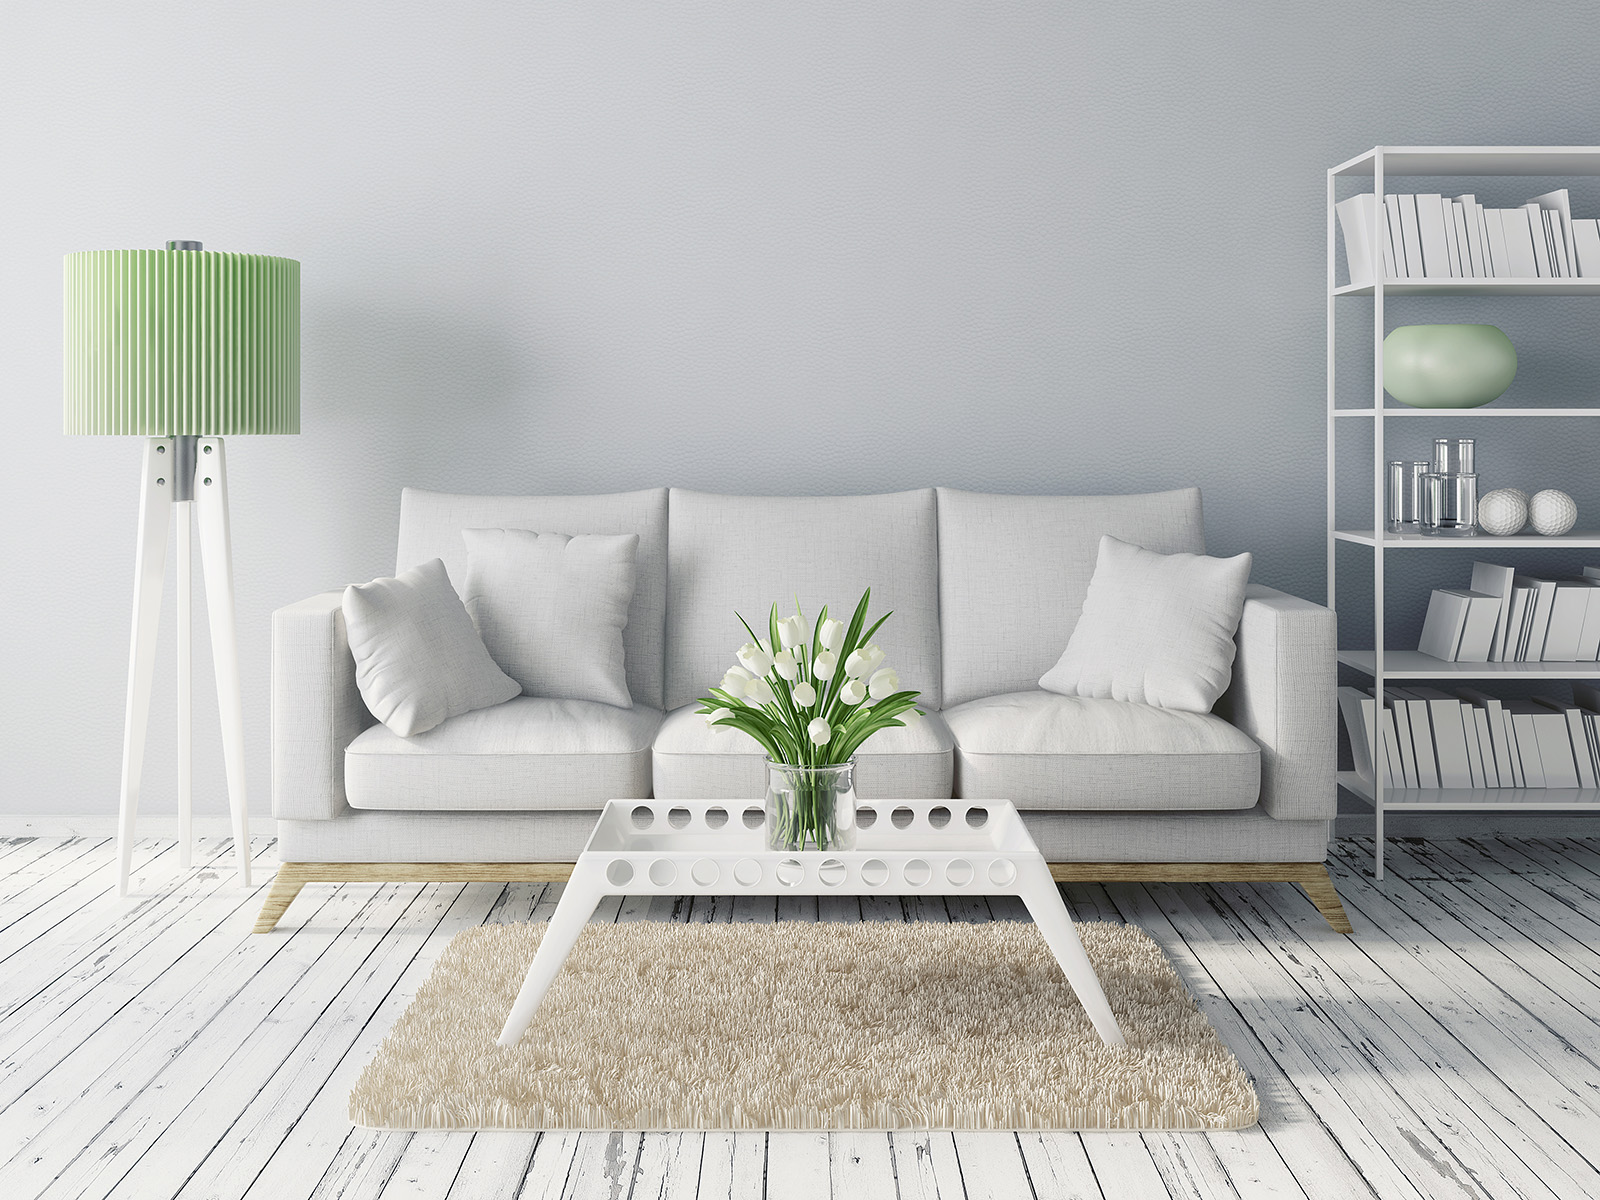 Sofa pillows and a vase on the coffee table 51214